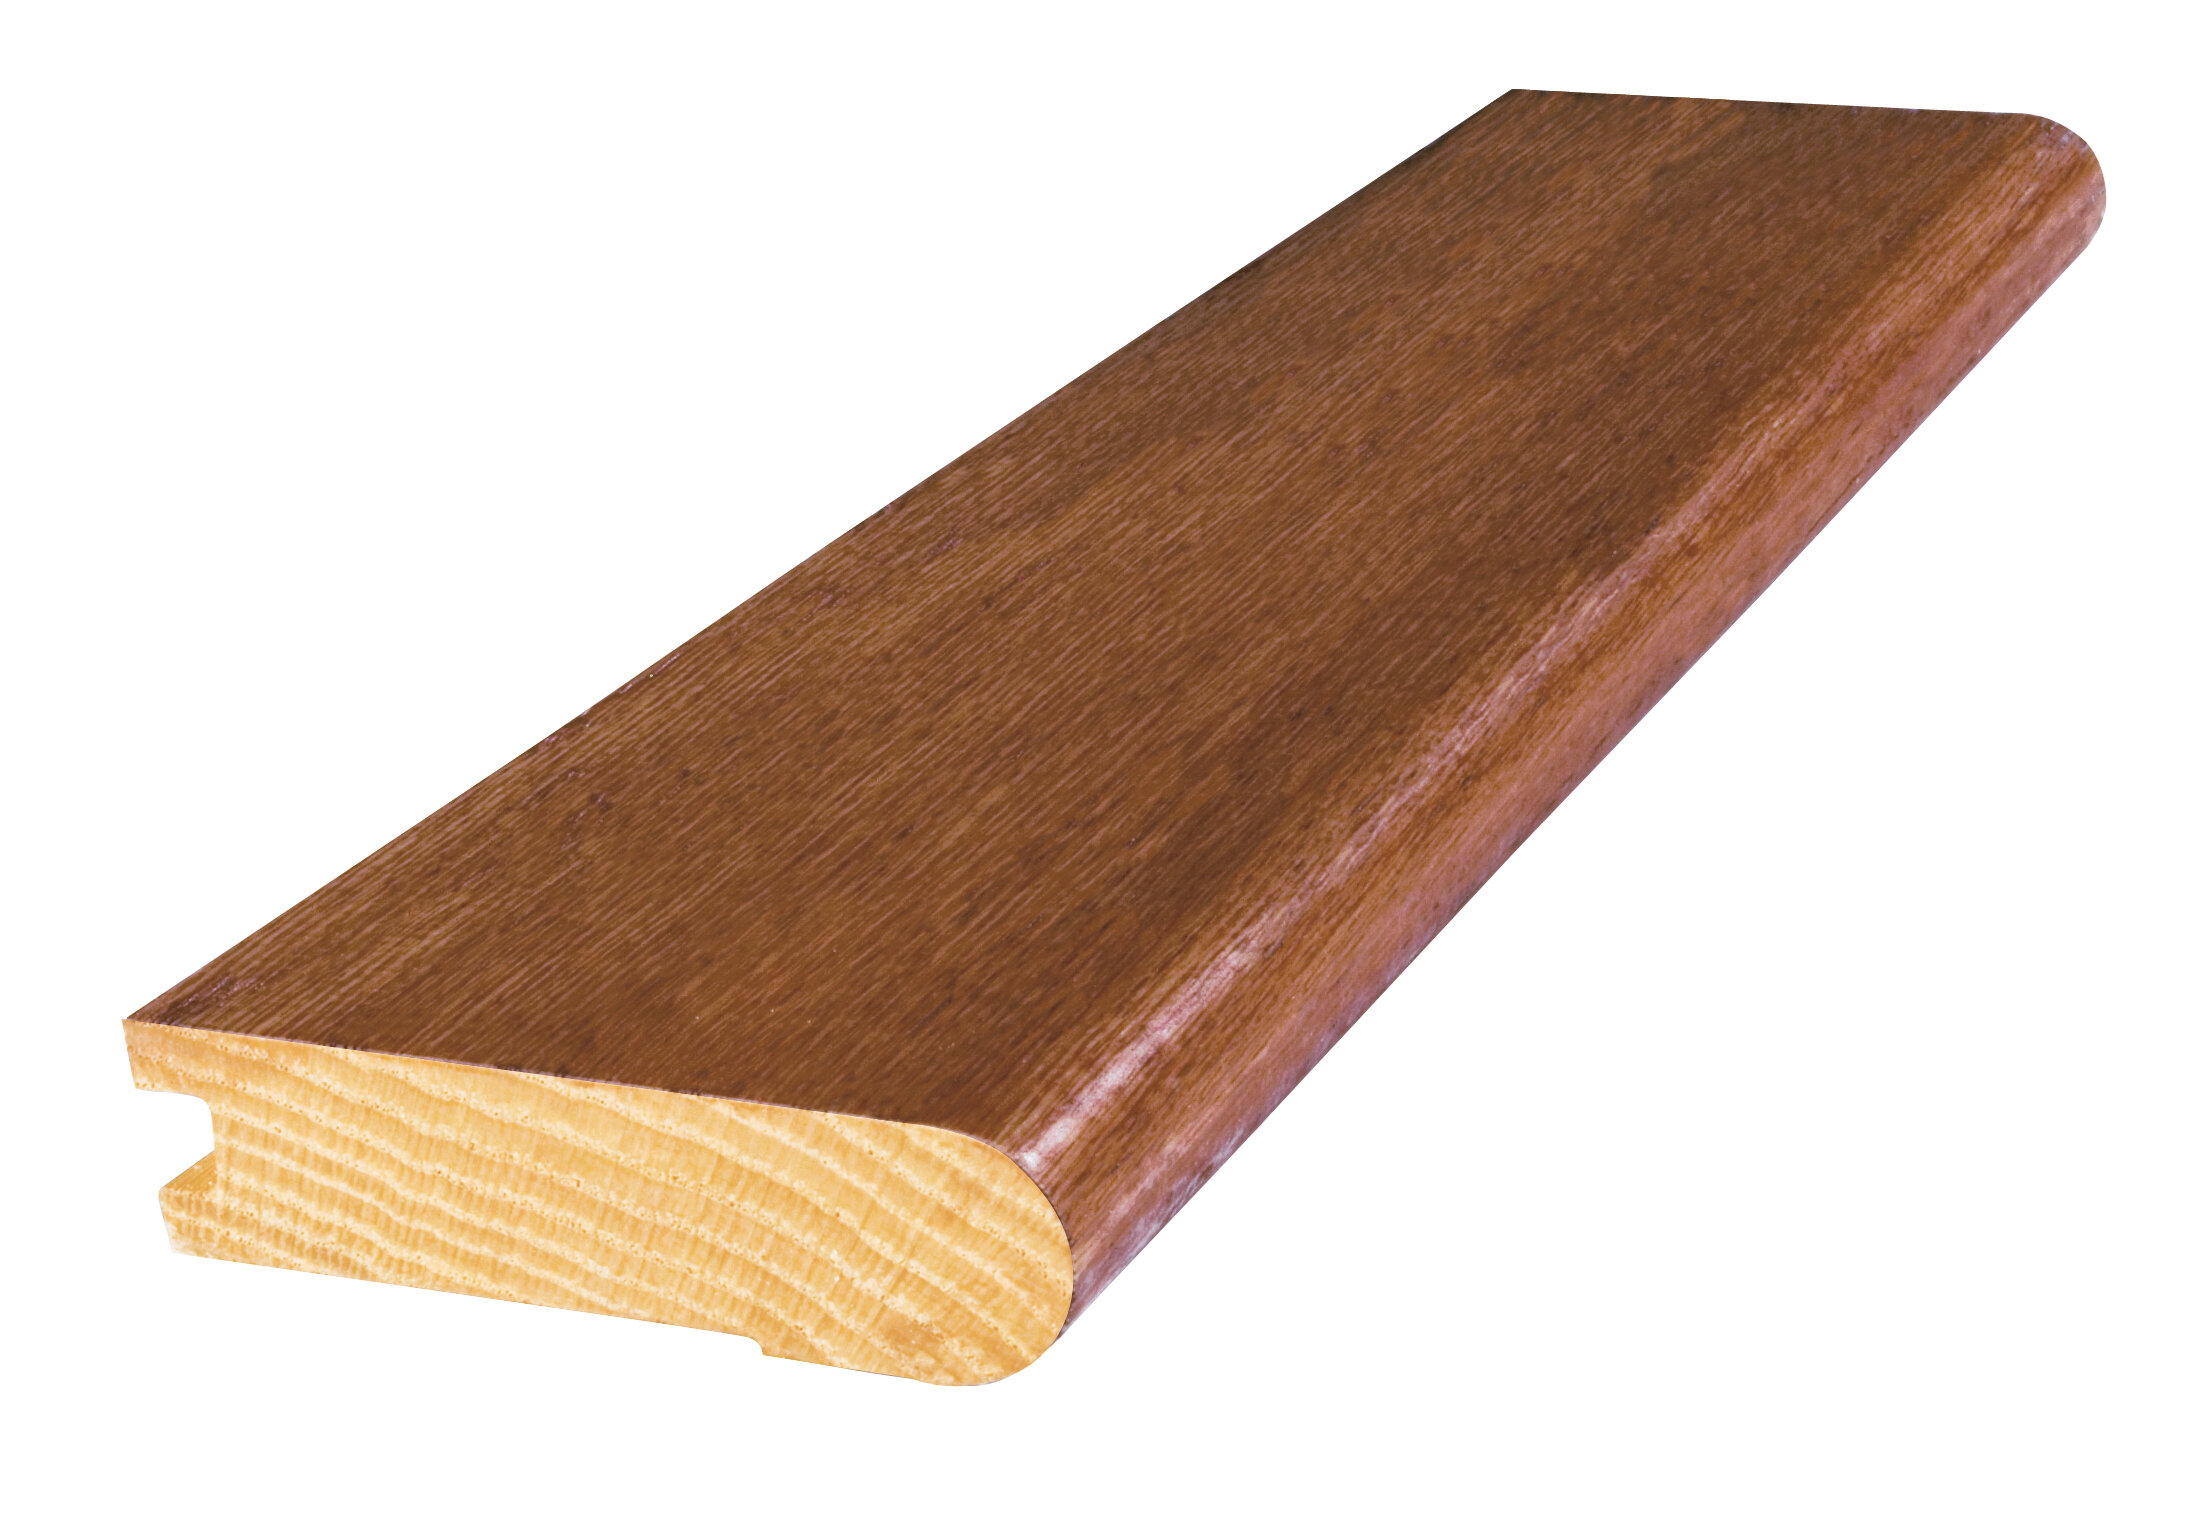 Mohawk Engineered Wood 0 8 Thick X 3 Wide X 84 Length Stair Nose Wayfair